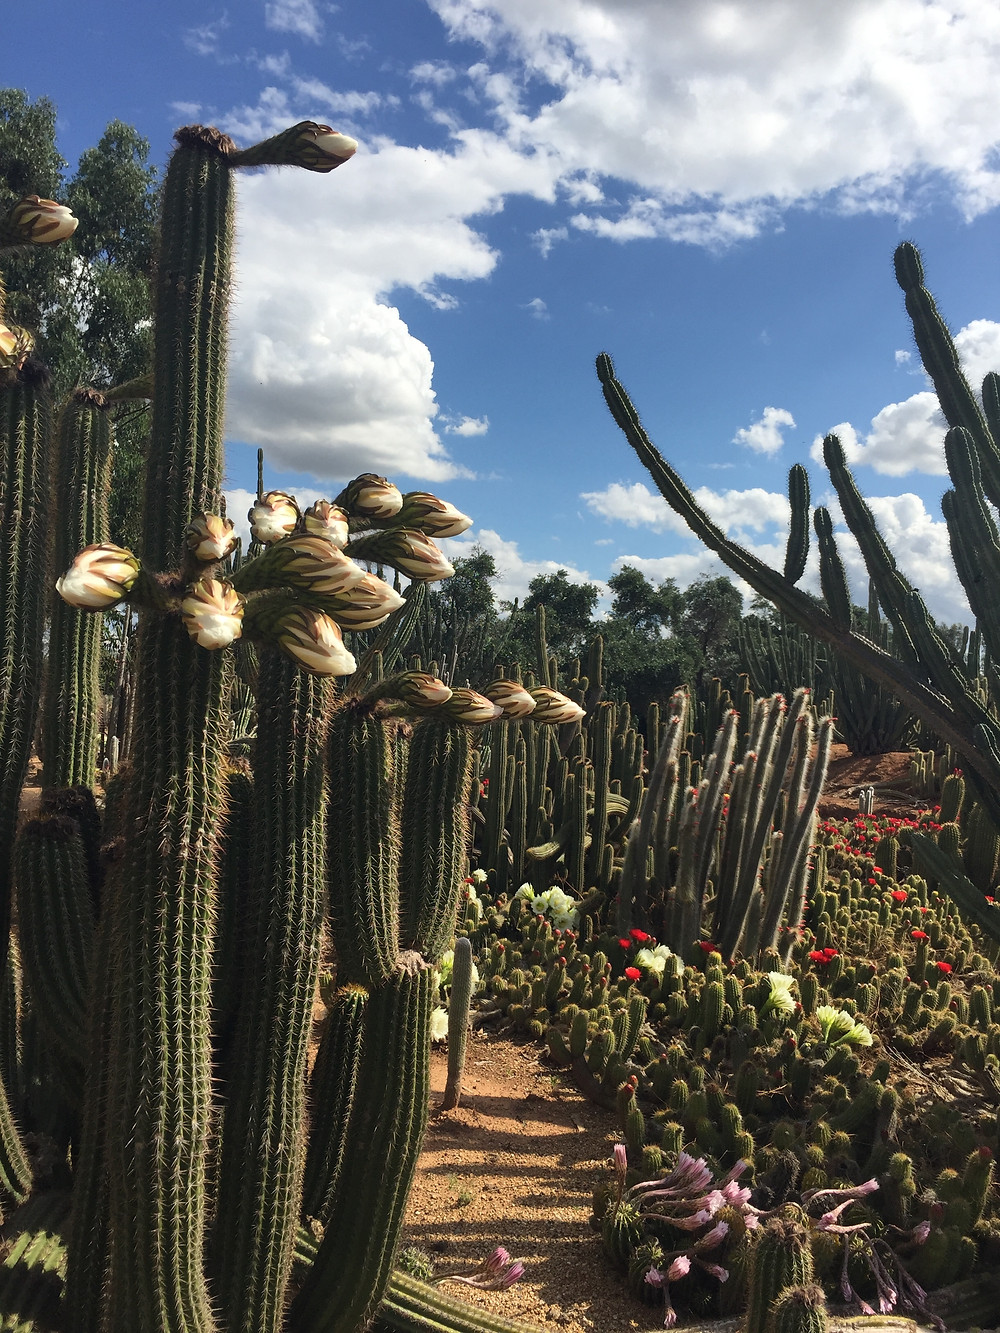 WHEN IN YARRAWONGA POP INTO CACTUS COUNTRY, IT'S PRETTY AMAZING.